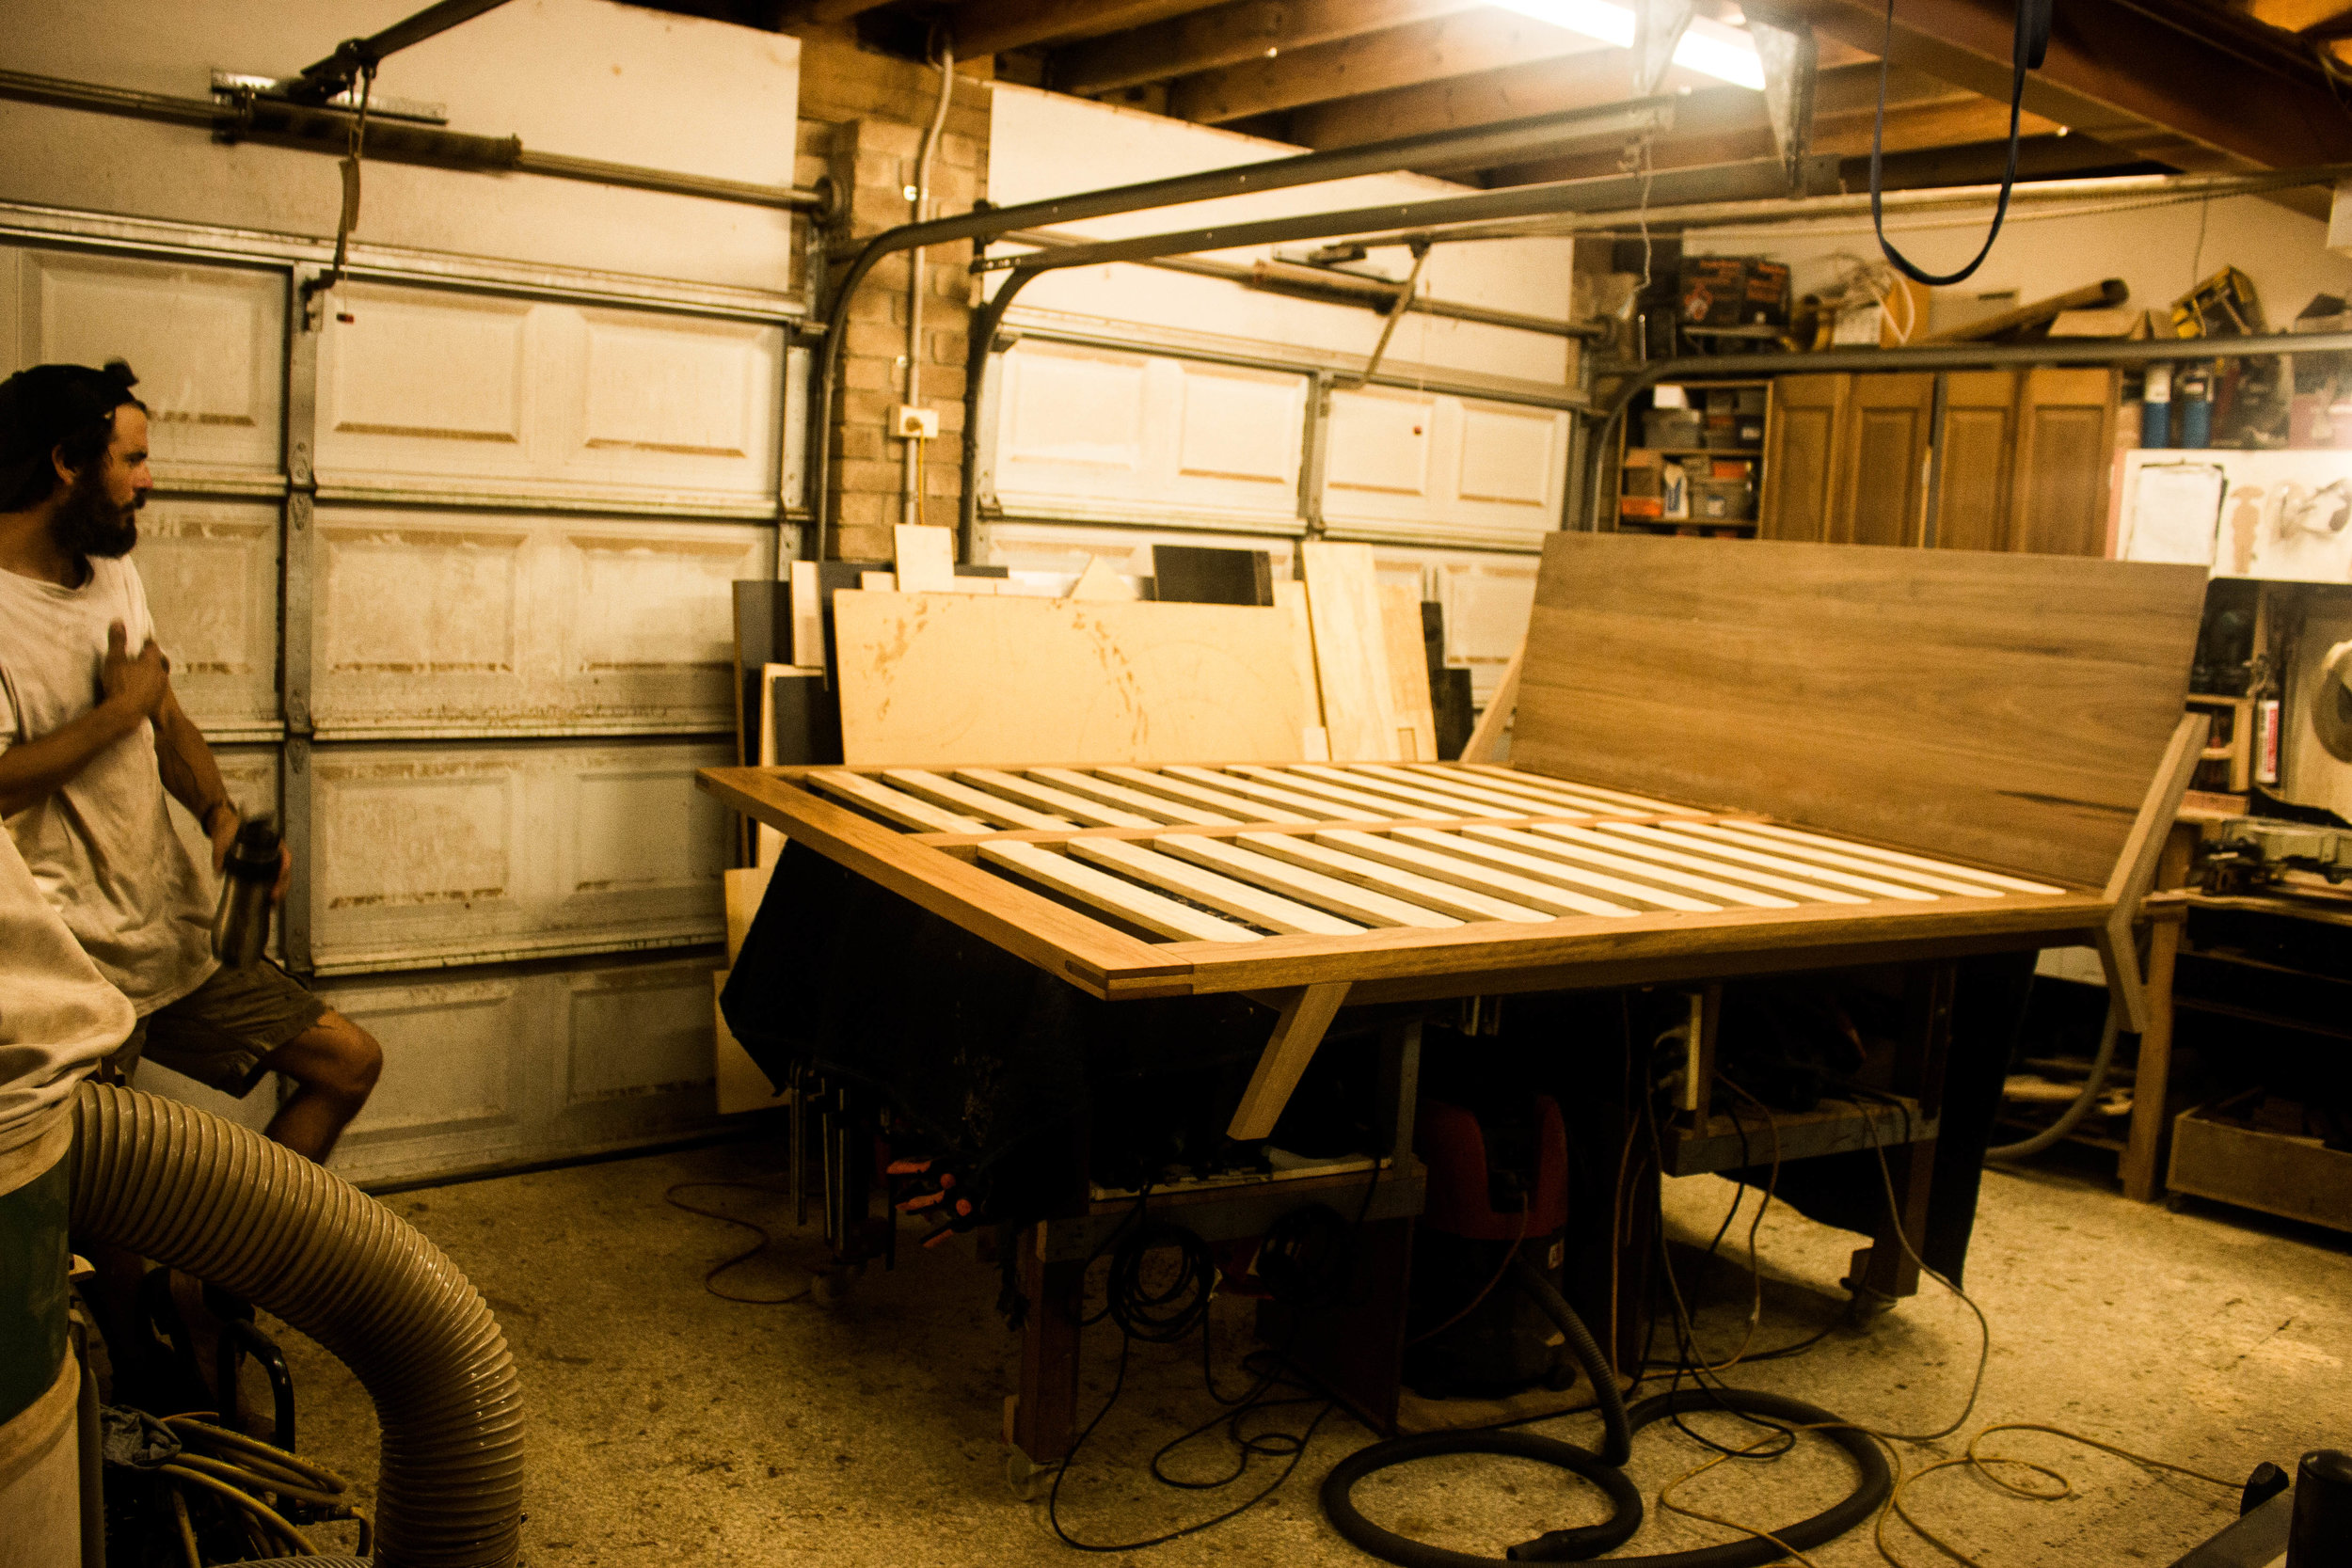 MM BED in the making by leaf handcrafted furniture